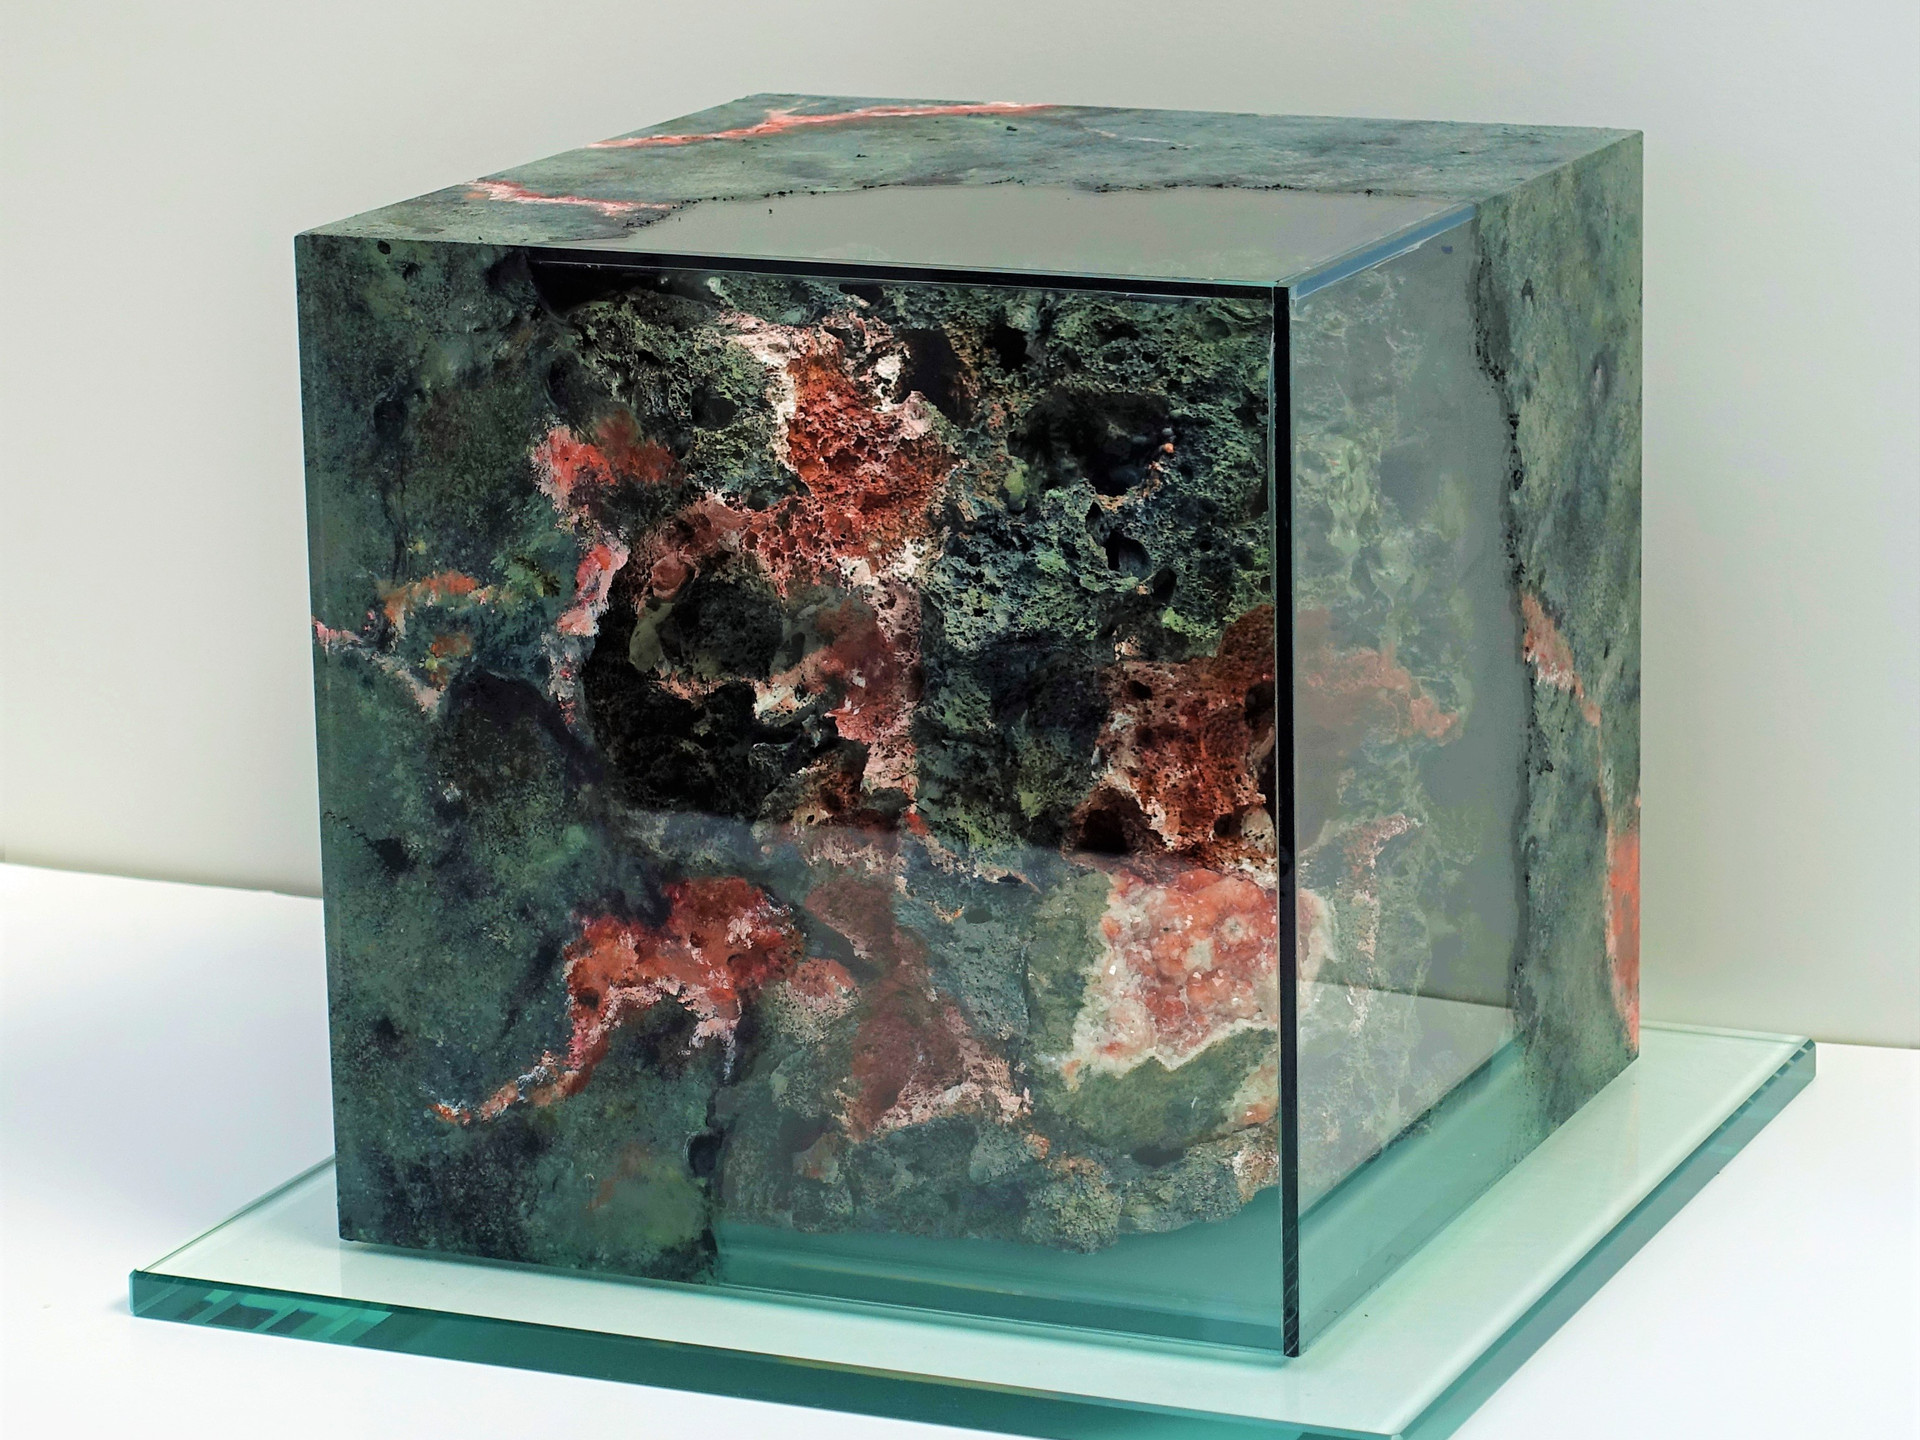 MineralIN (2) ANALCIME 25x25x25 cm (inside = mineral embedded in 3D rock imitation,  glass = painted with mineral texture )